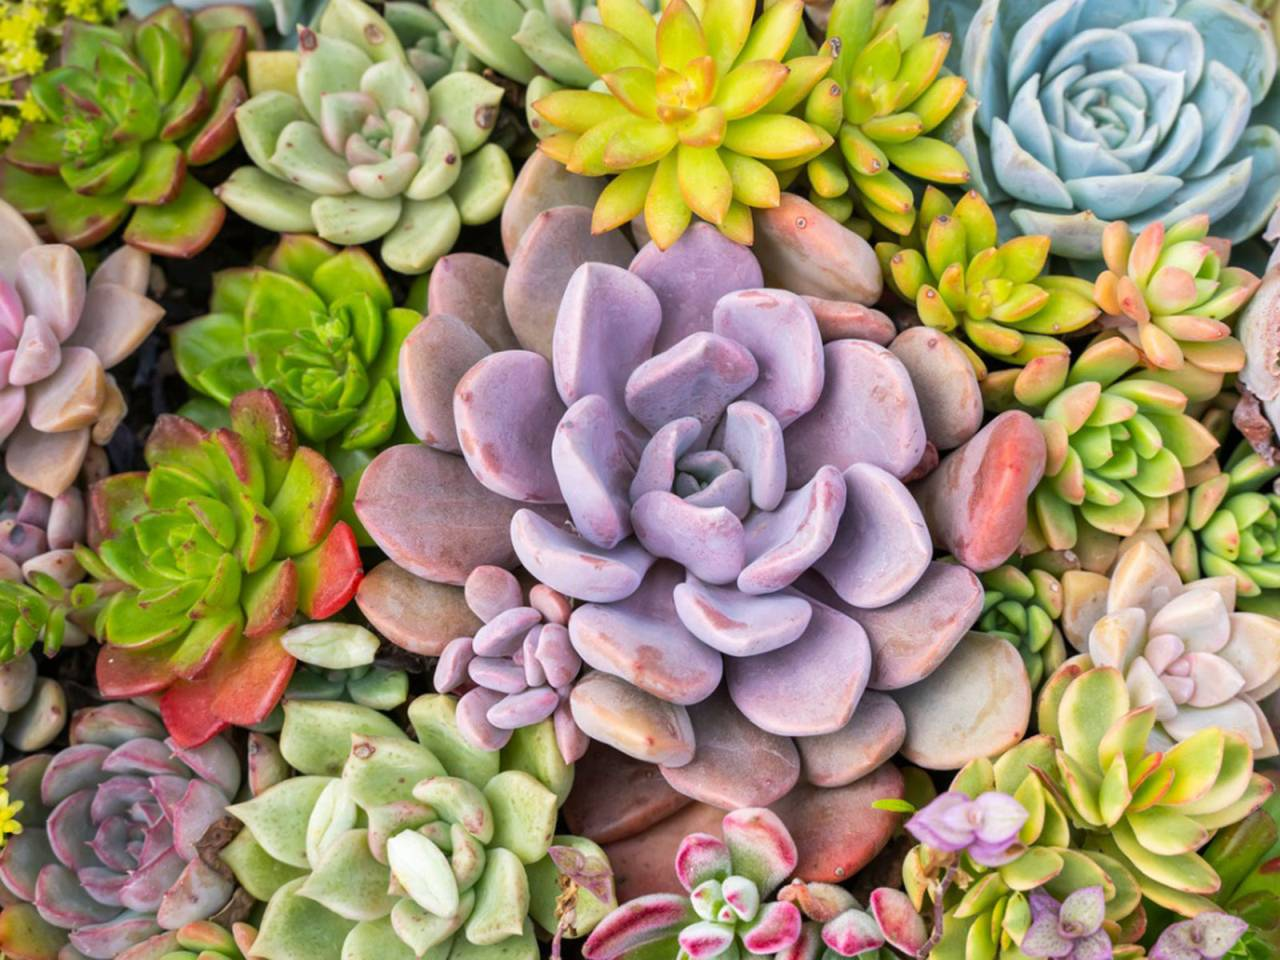 photo of several small plants of various colors